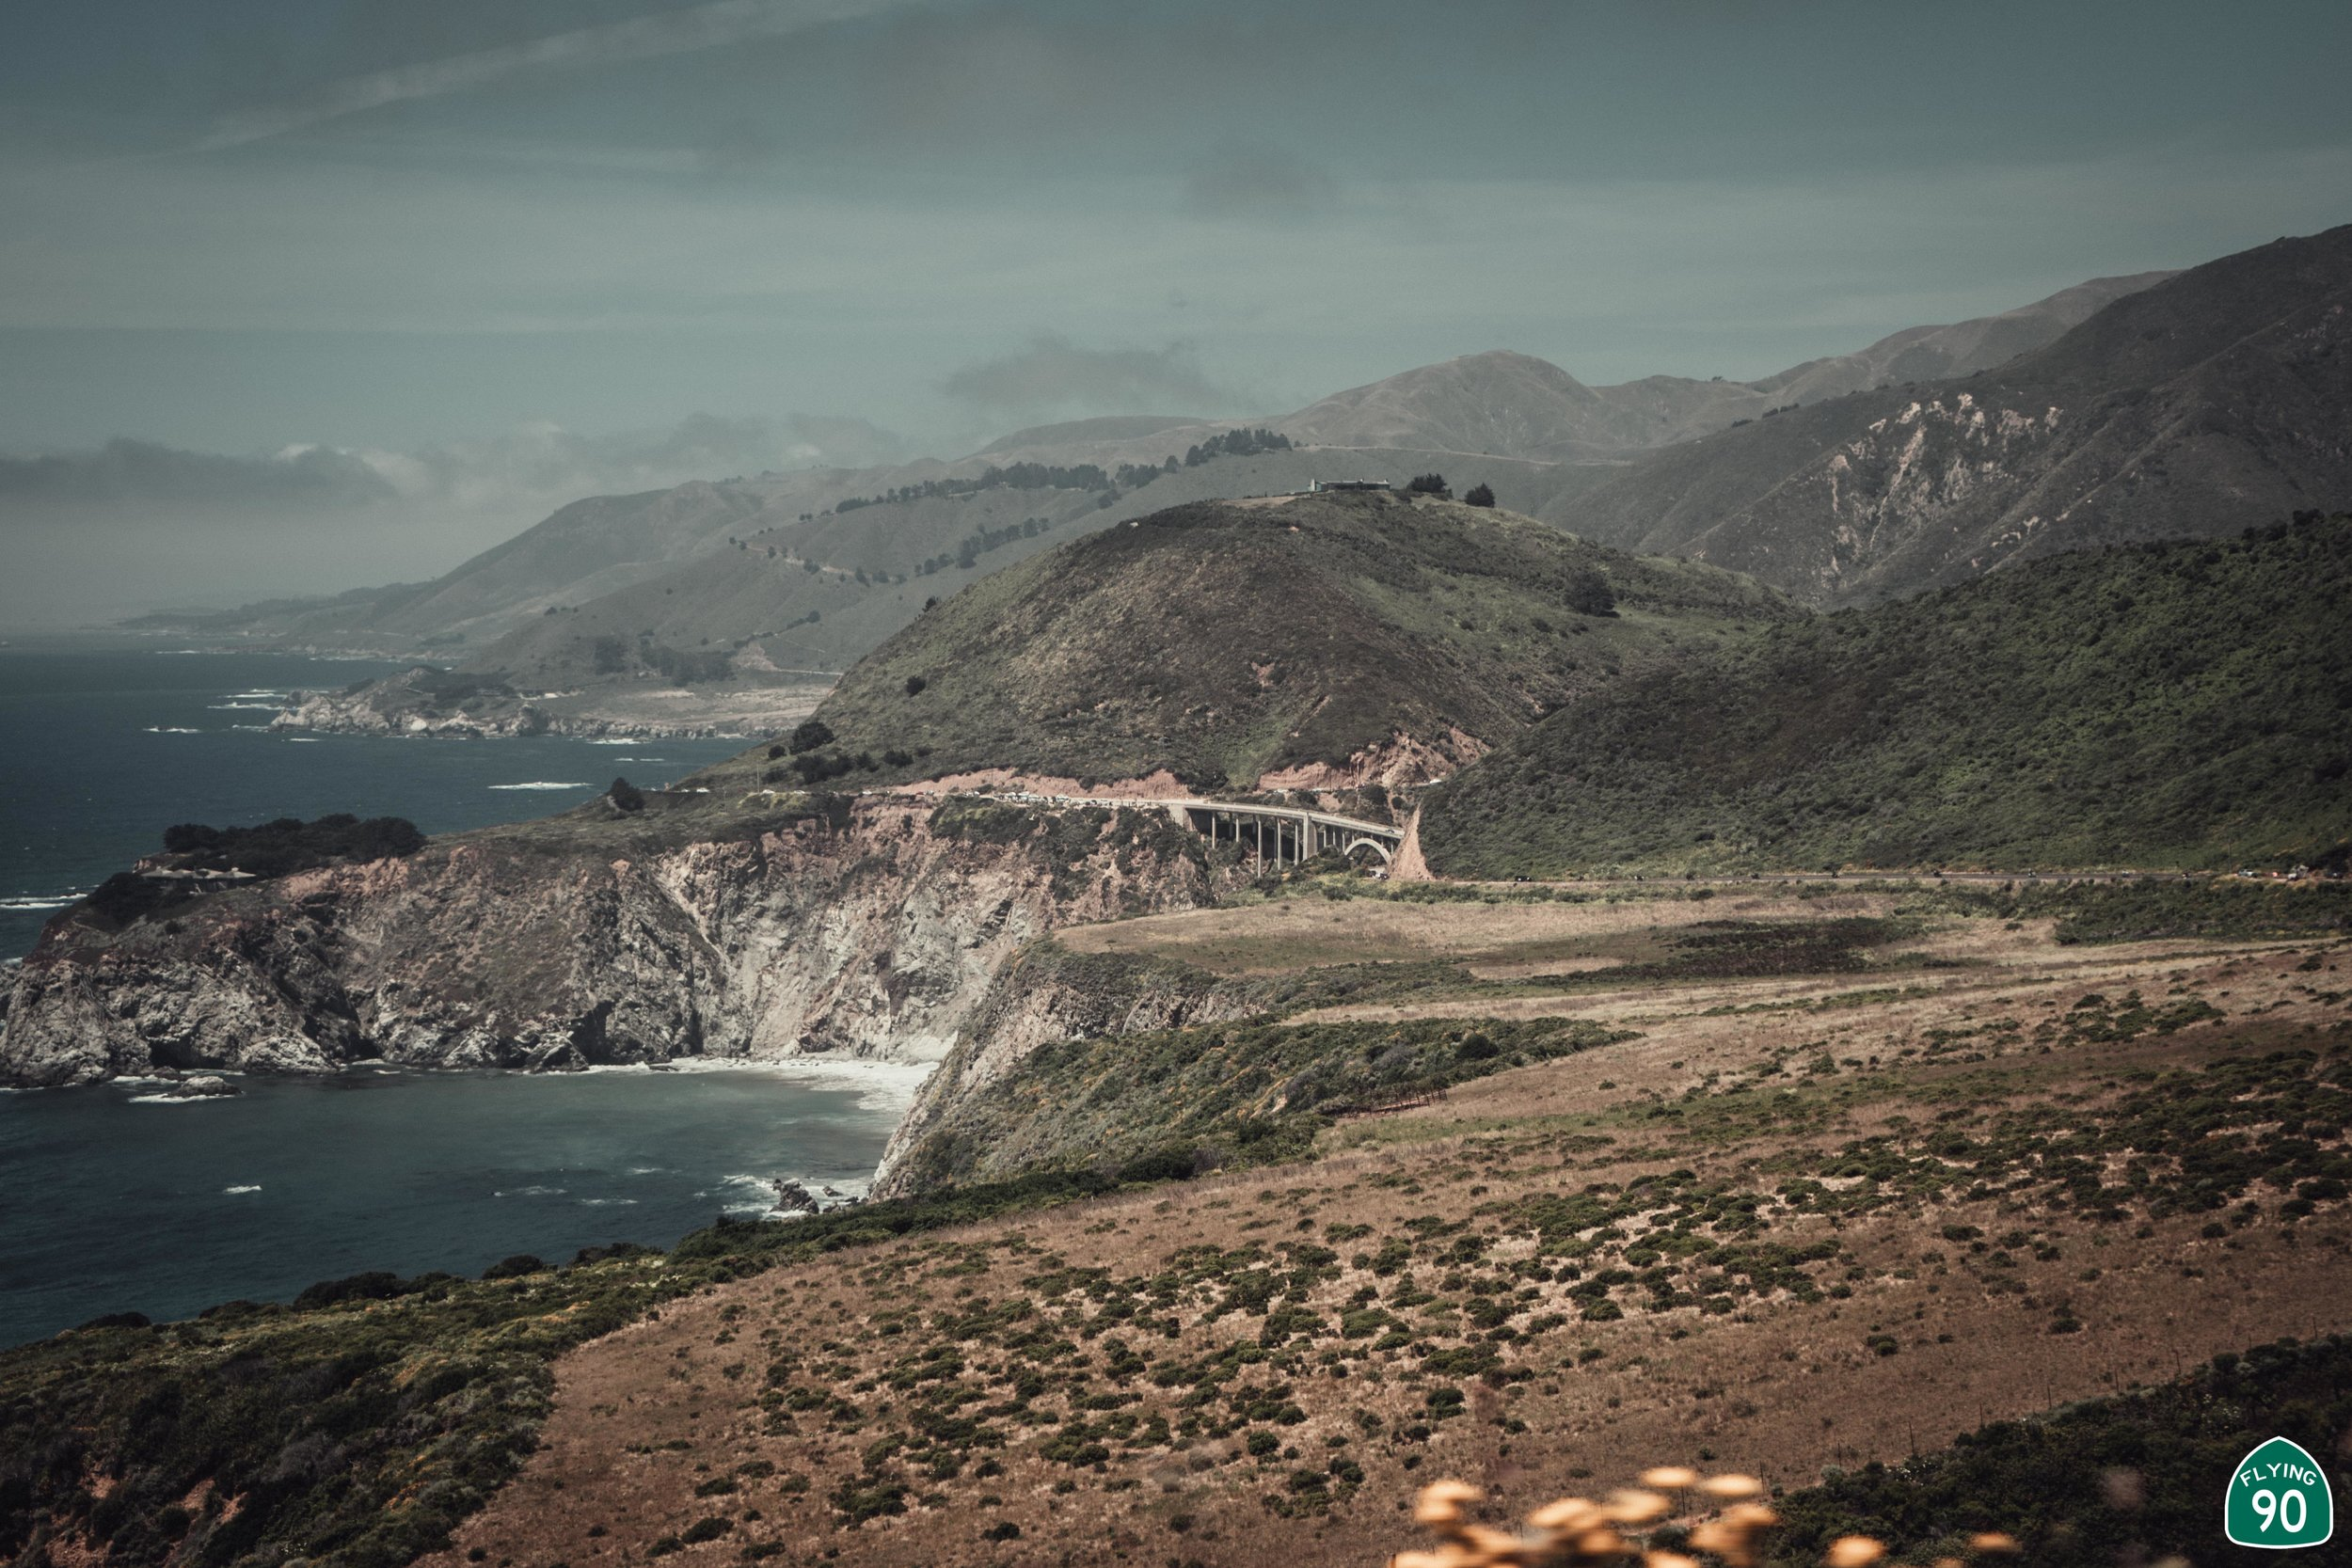 I think this is my favorite photo from this set. When you drive over the Bixby Bridge, it seems SO MASSIVE! But in this photo, especially compared to the California Coast, it seems so tiny!